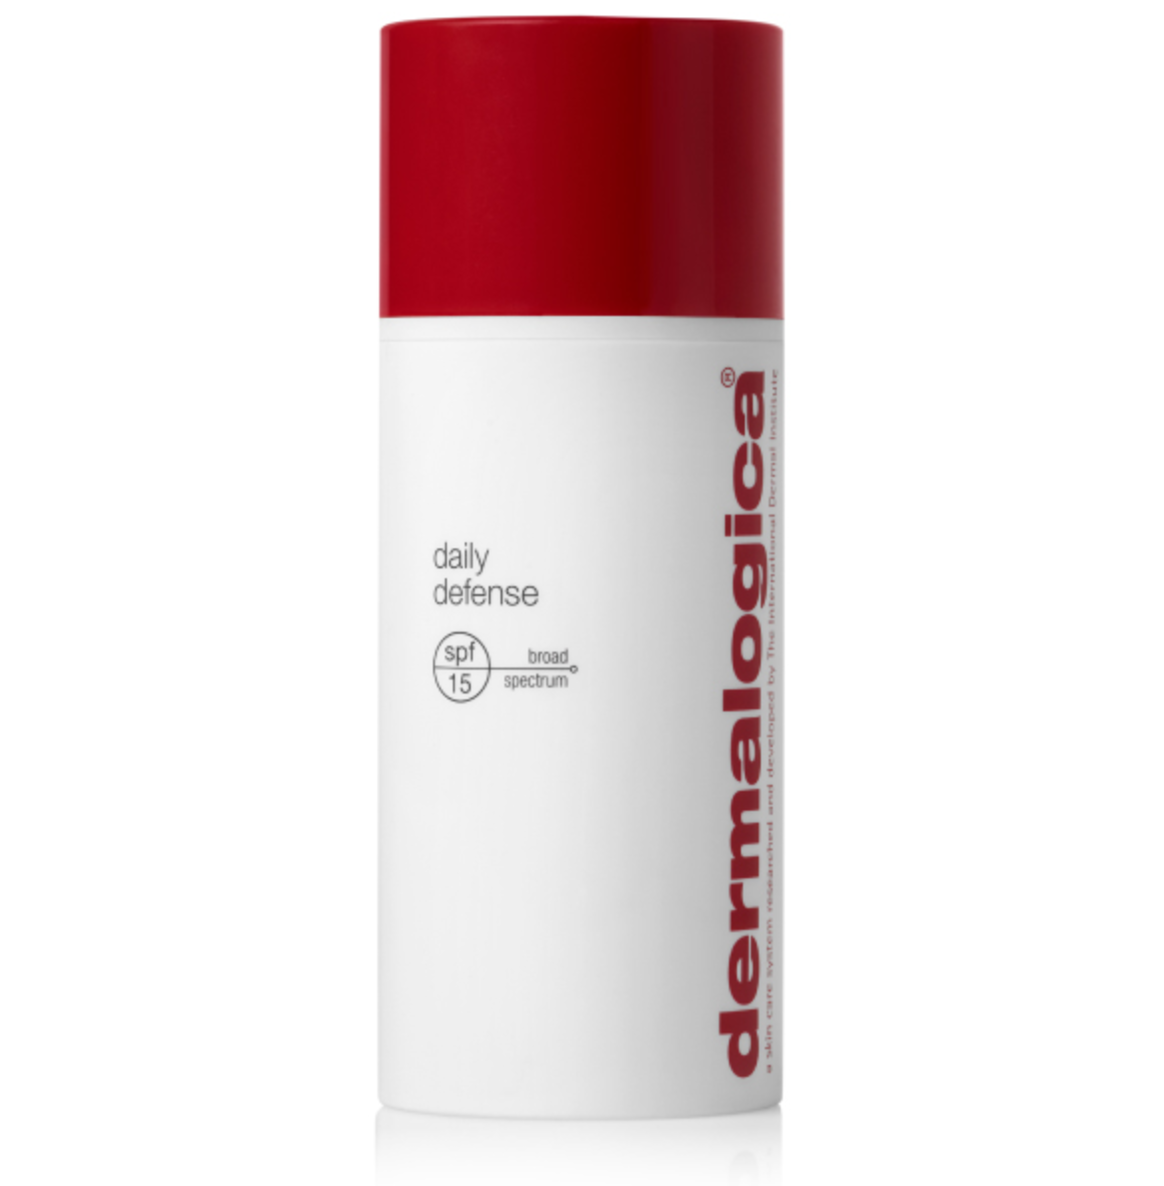 Dermalogica daily defence SPF15